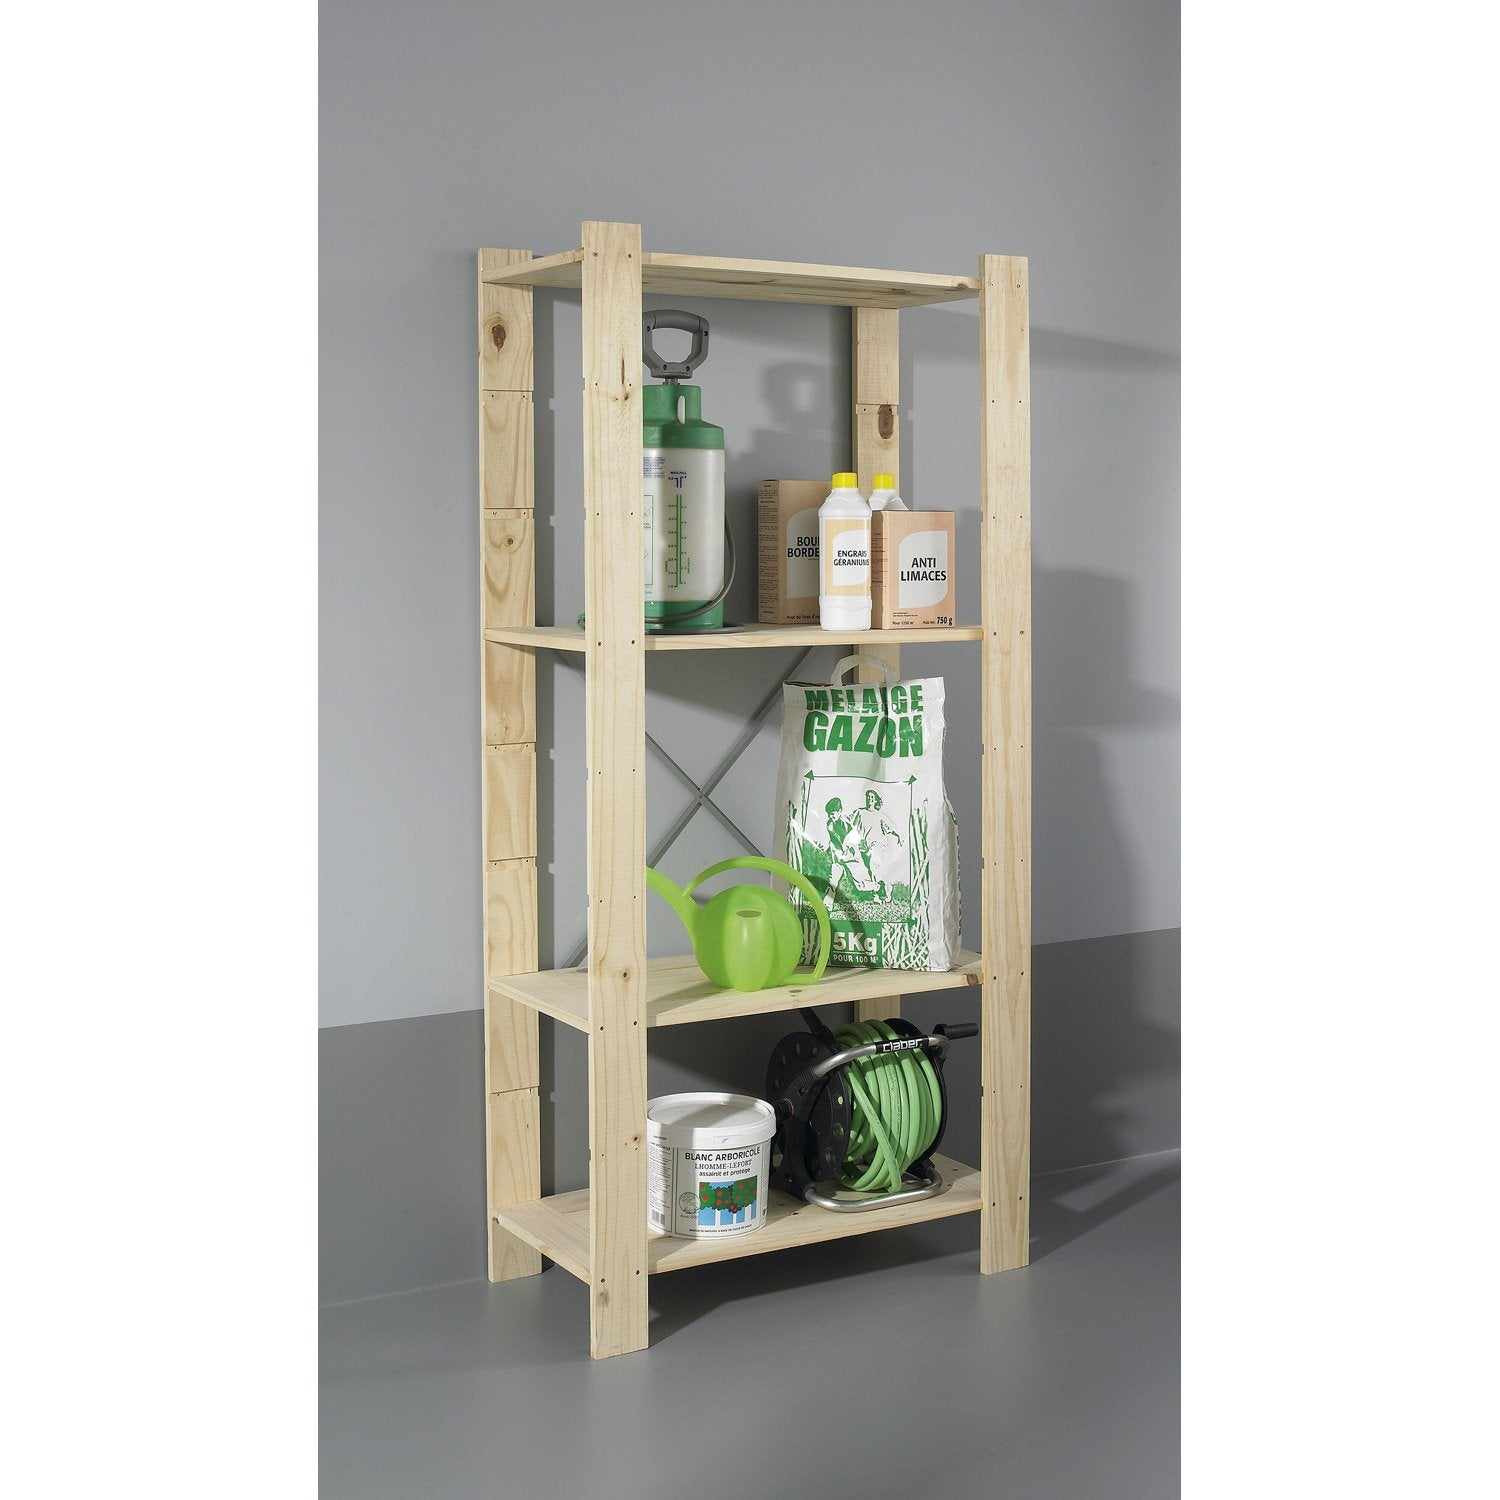 Etag re en pin 4 tablettes mod le spacea l82xh170xp40cm leroy merlin - Leroy merlin etagere metal ...